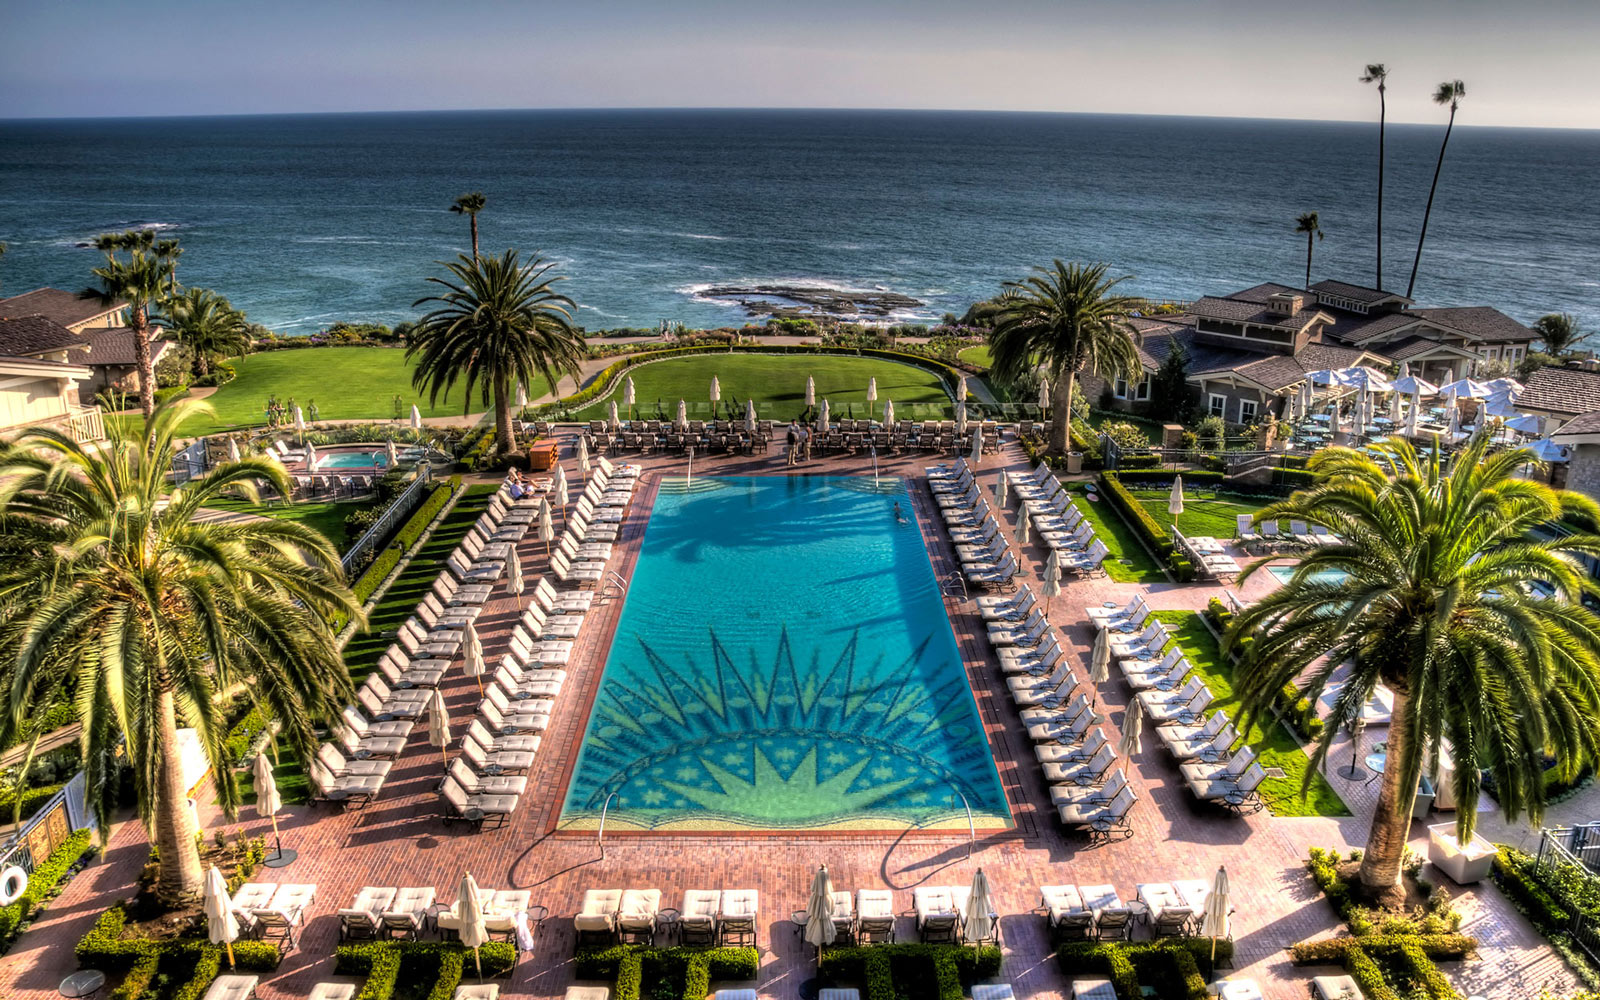 5 Favorite Hotels in Laguna Beach